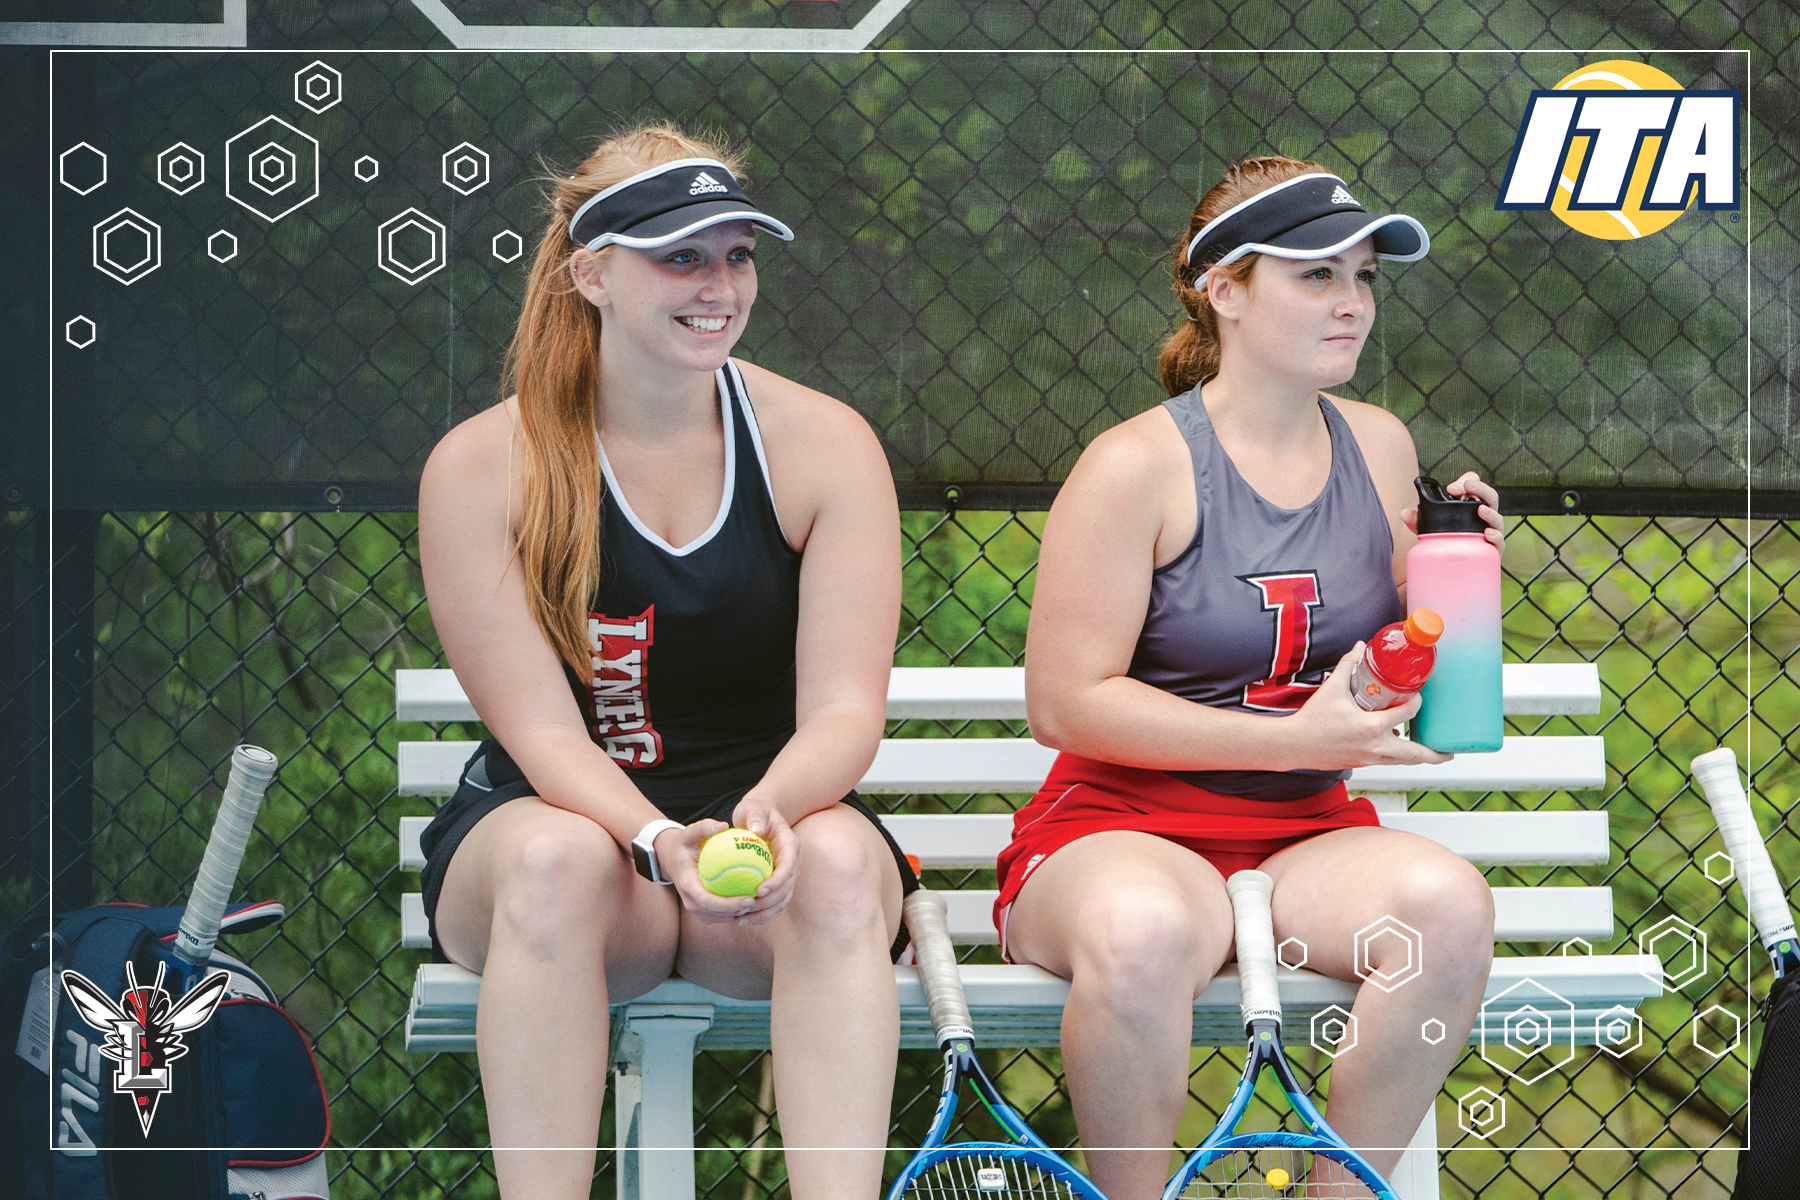 Tennis players rest on a bench between sets